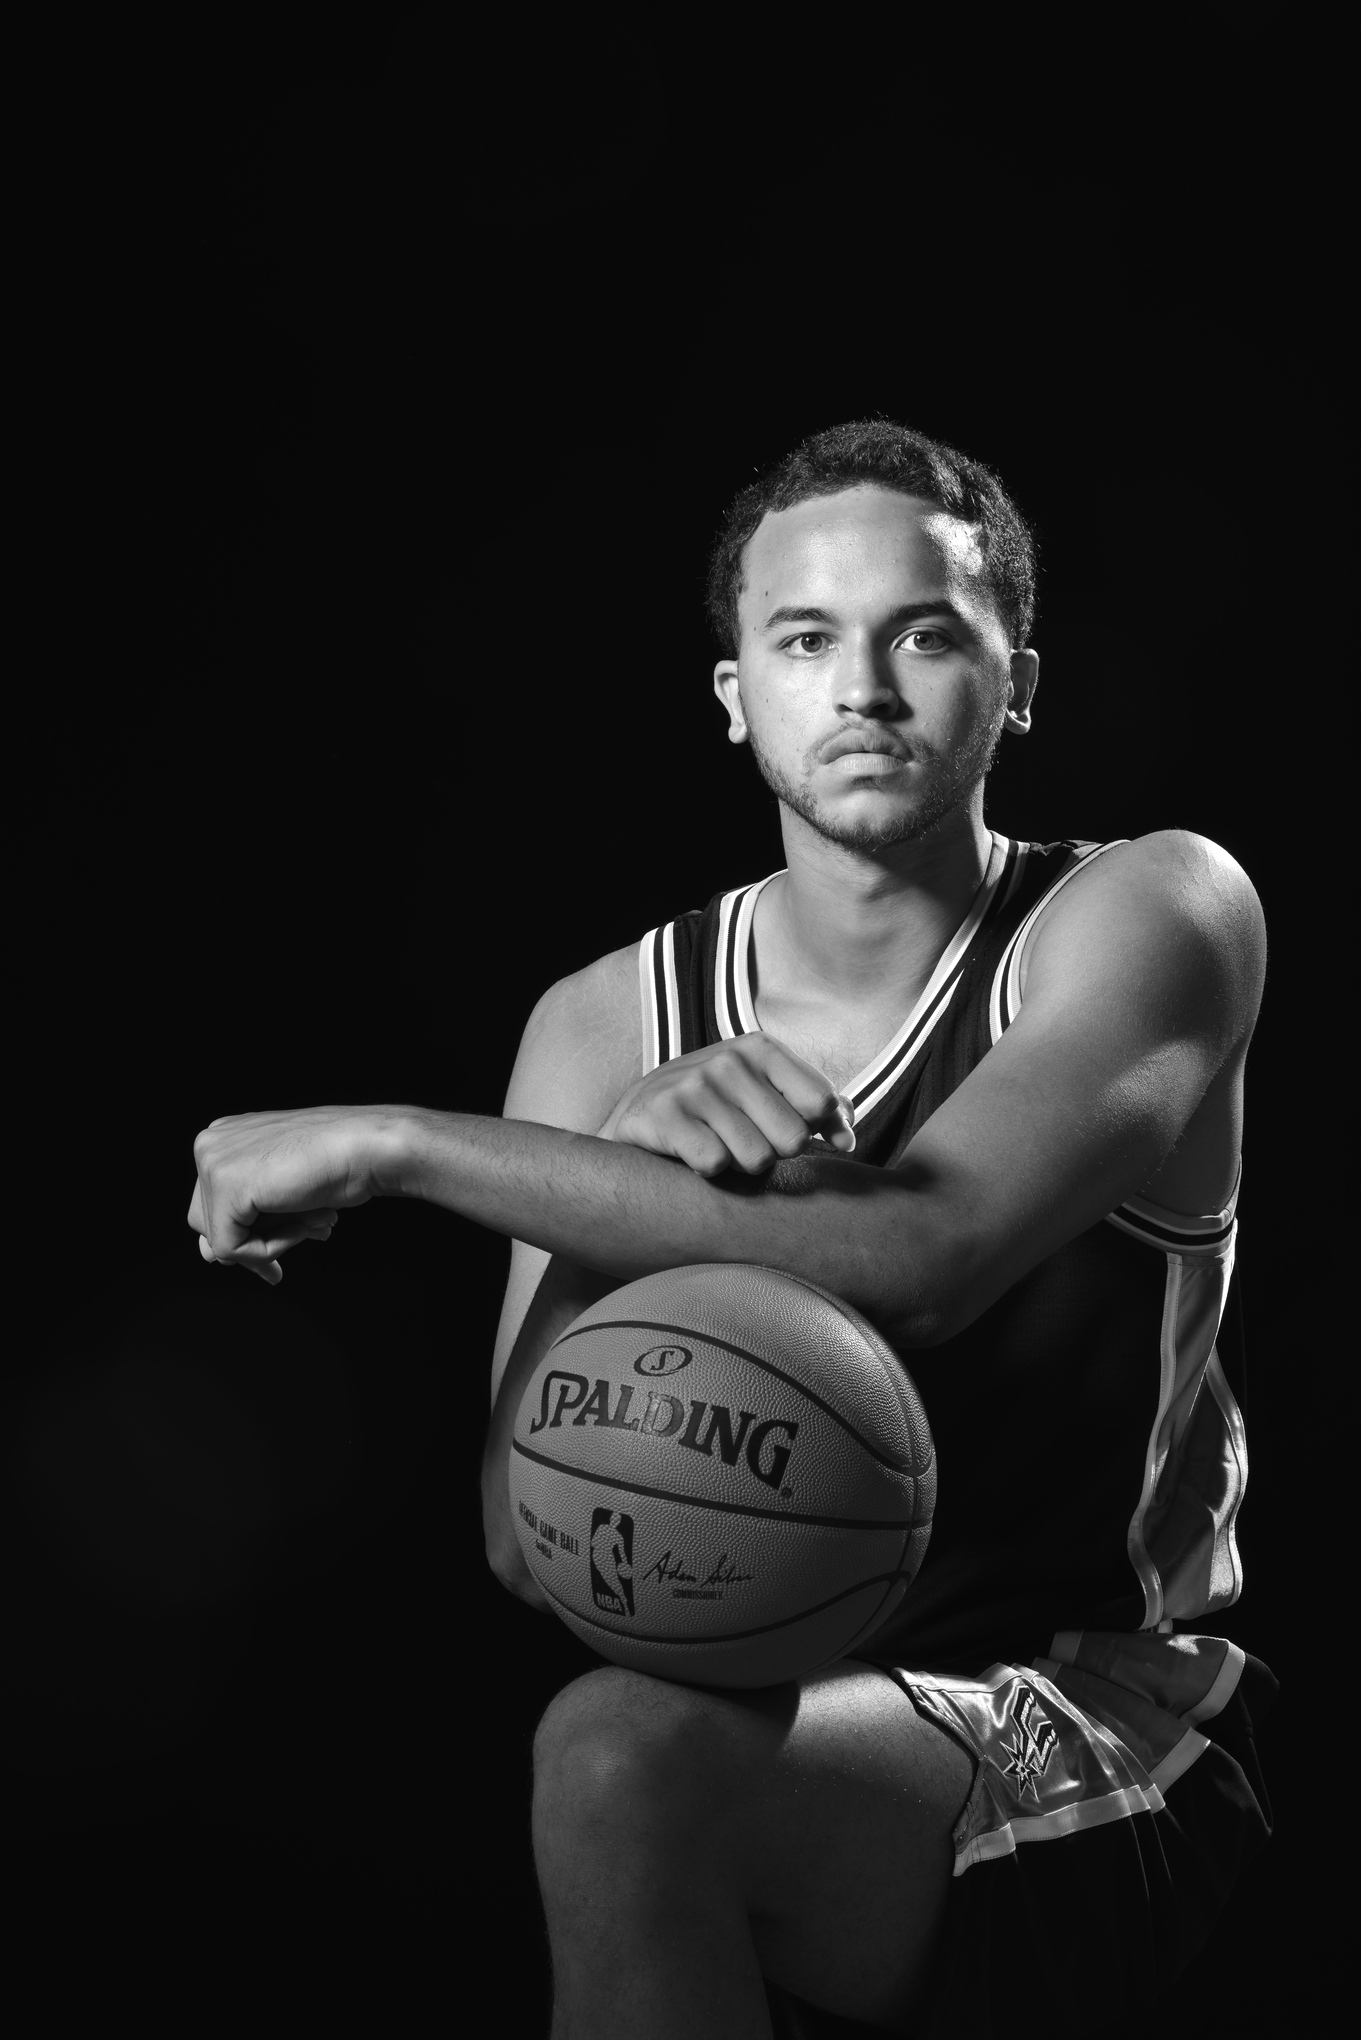 Kyle-anderson-nba-rookie-day-10